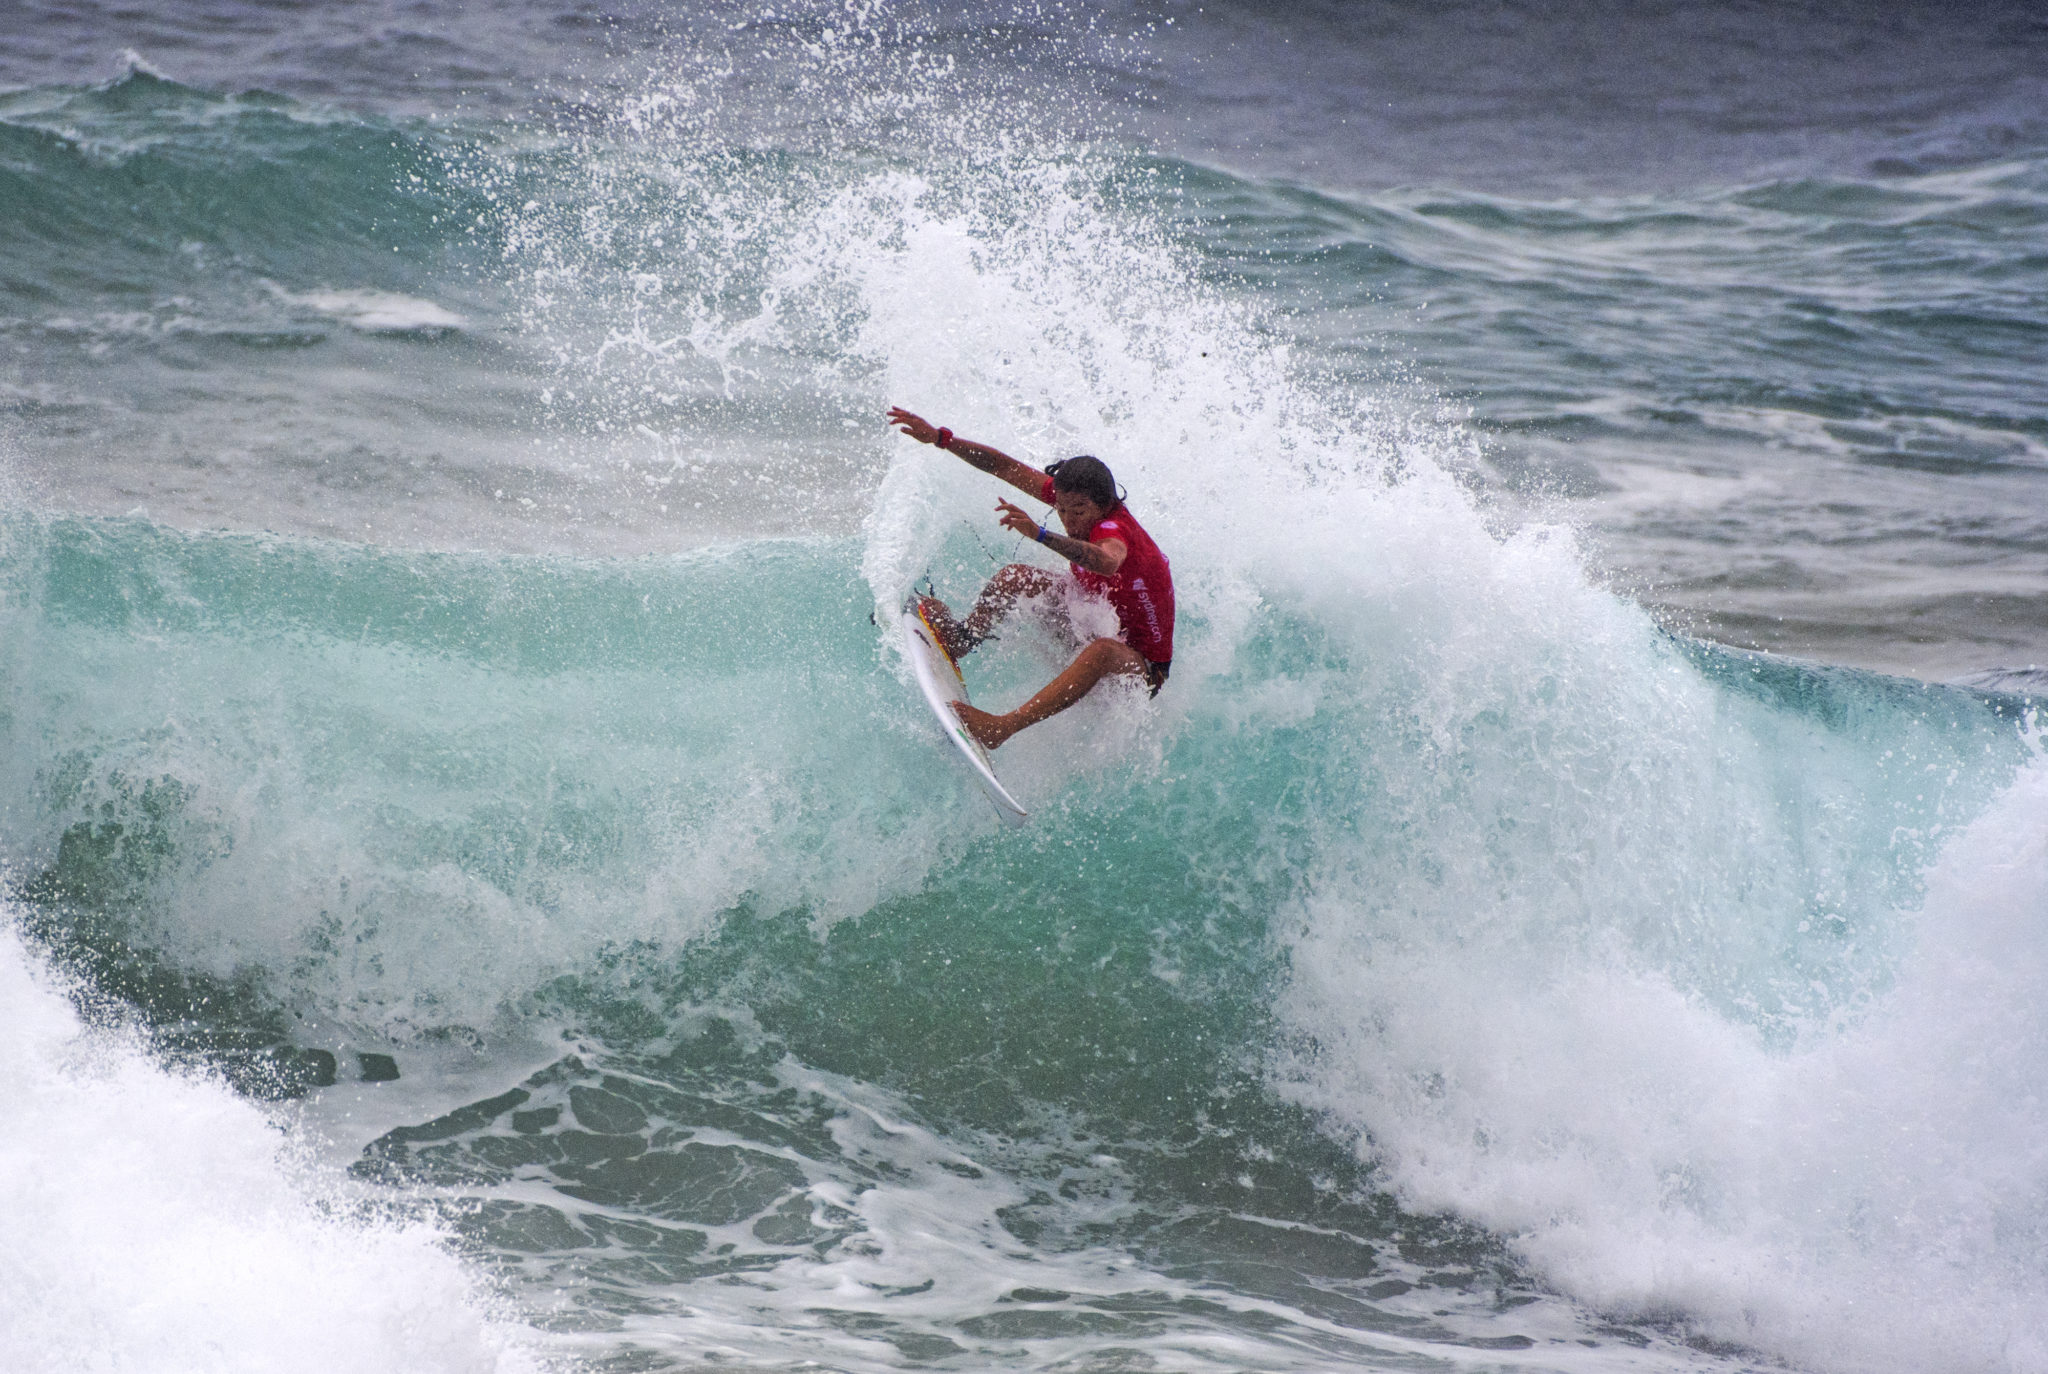 Silvana Lima was eliminated in Round five 2017 girls Make Your Move Women's Pro